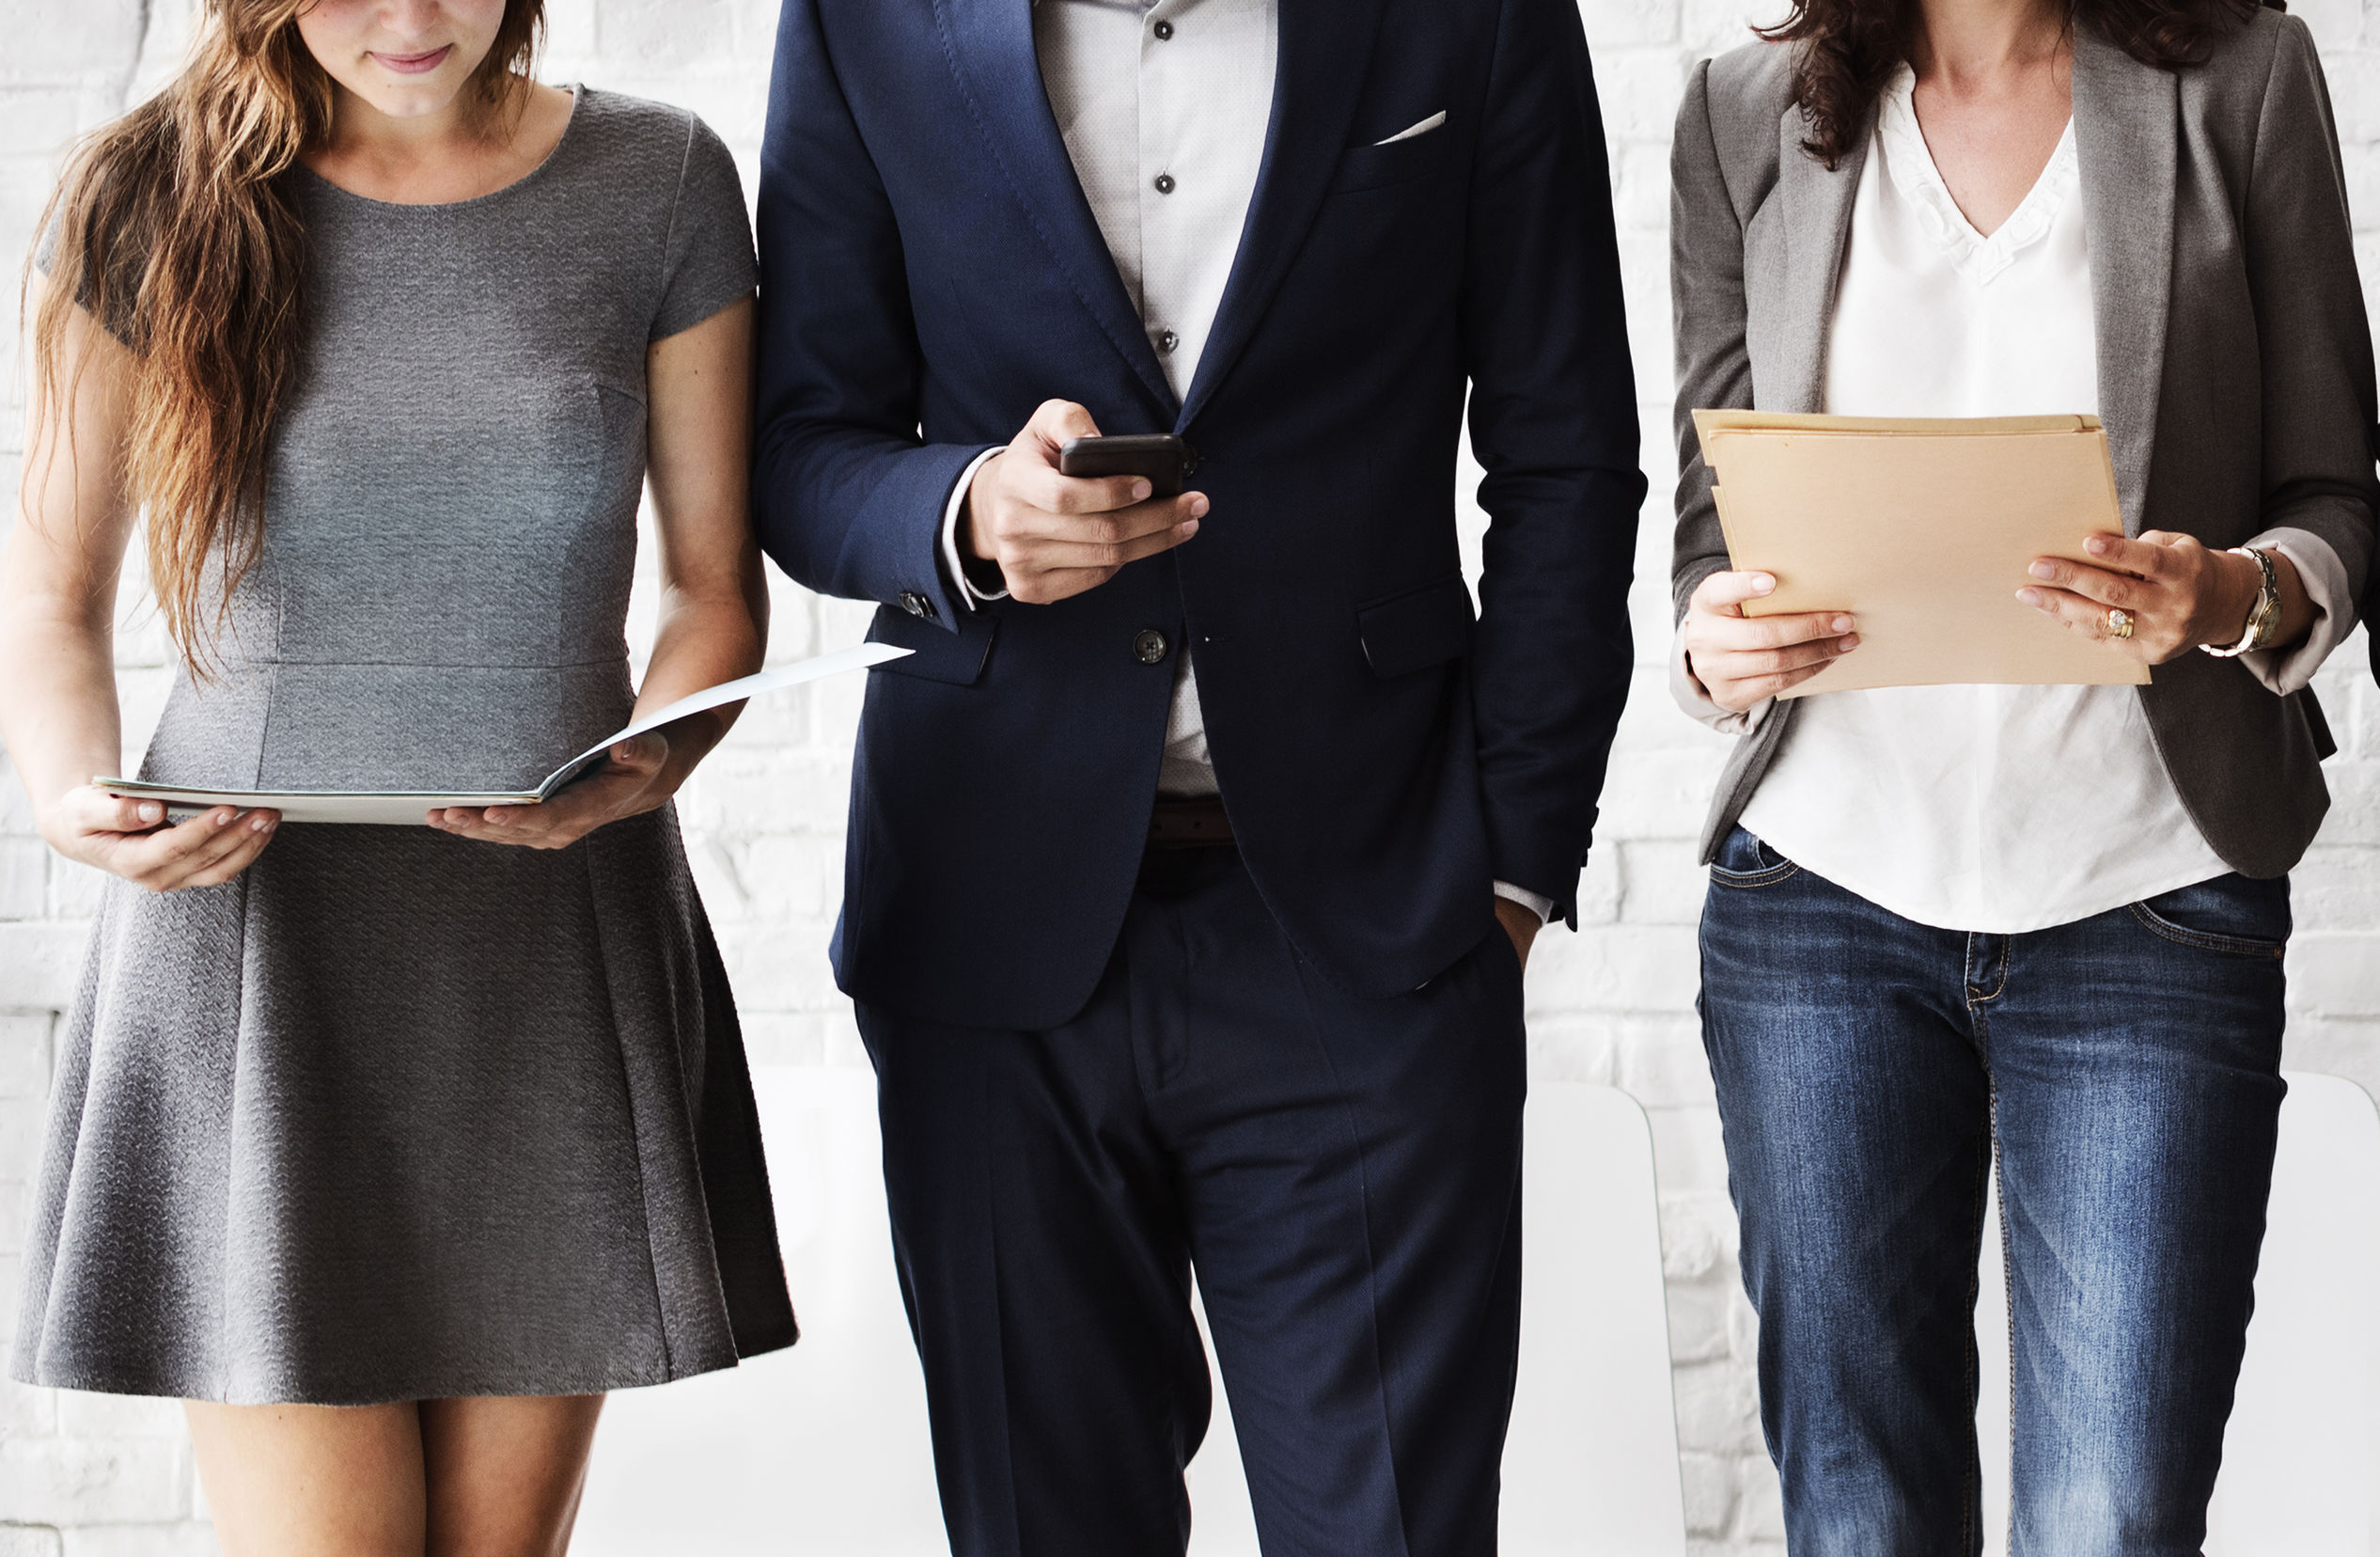 ultimate guide to using texting for HR